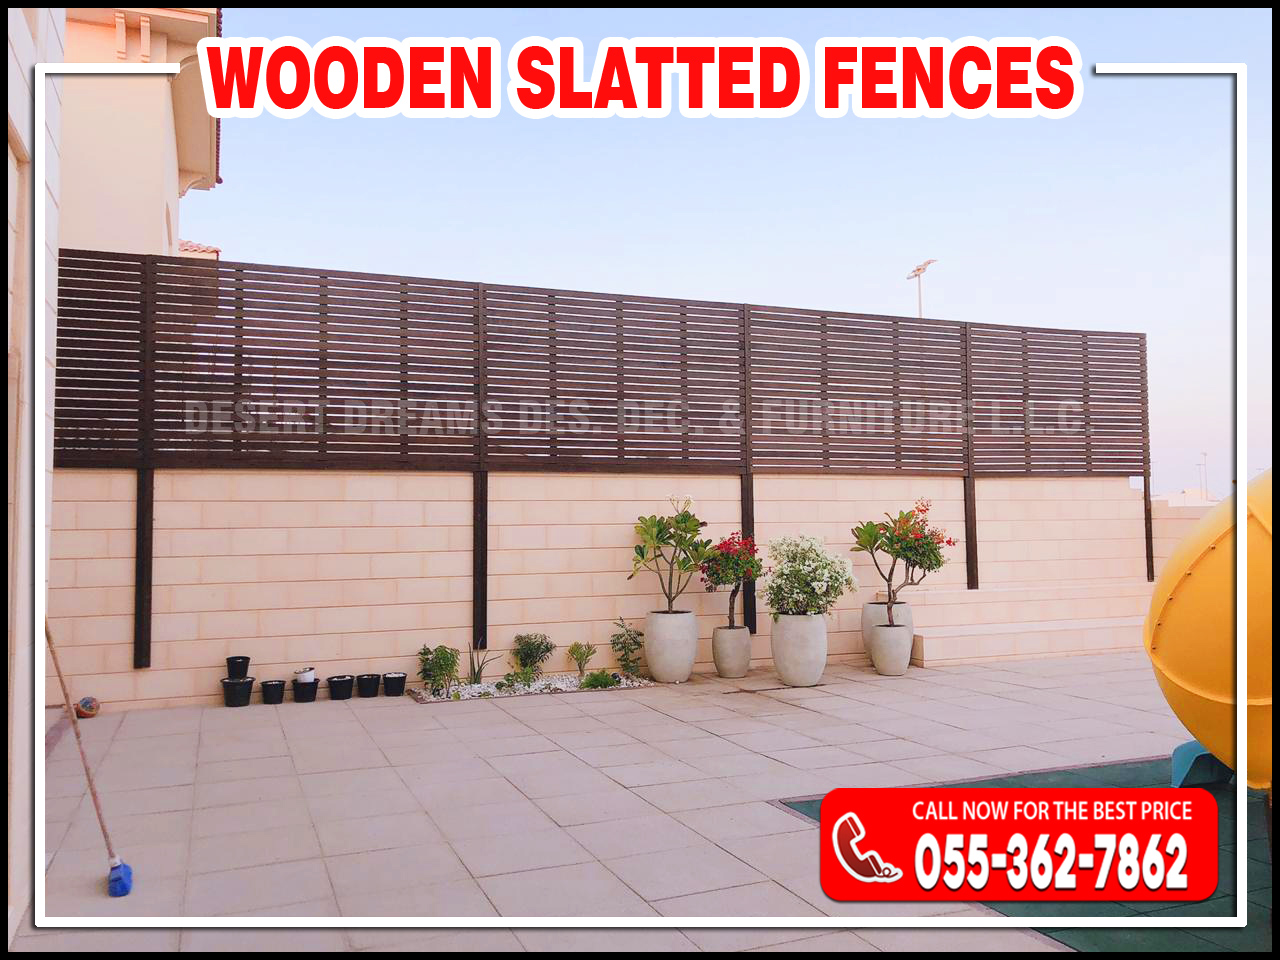 Wooden Privacy Slatted Fences in Abu Dhabi, UAE-2.jpg